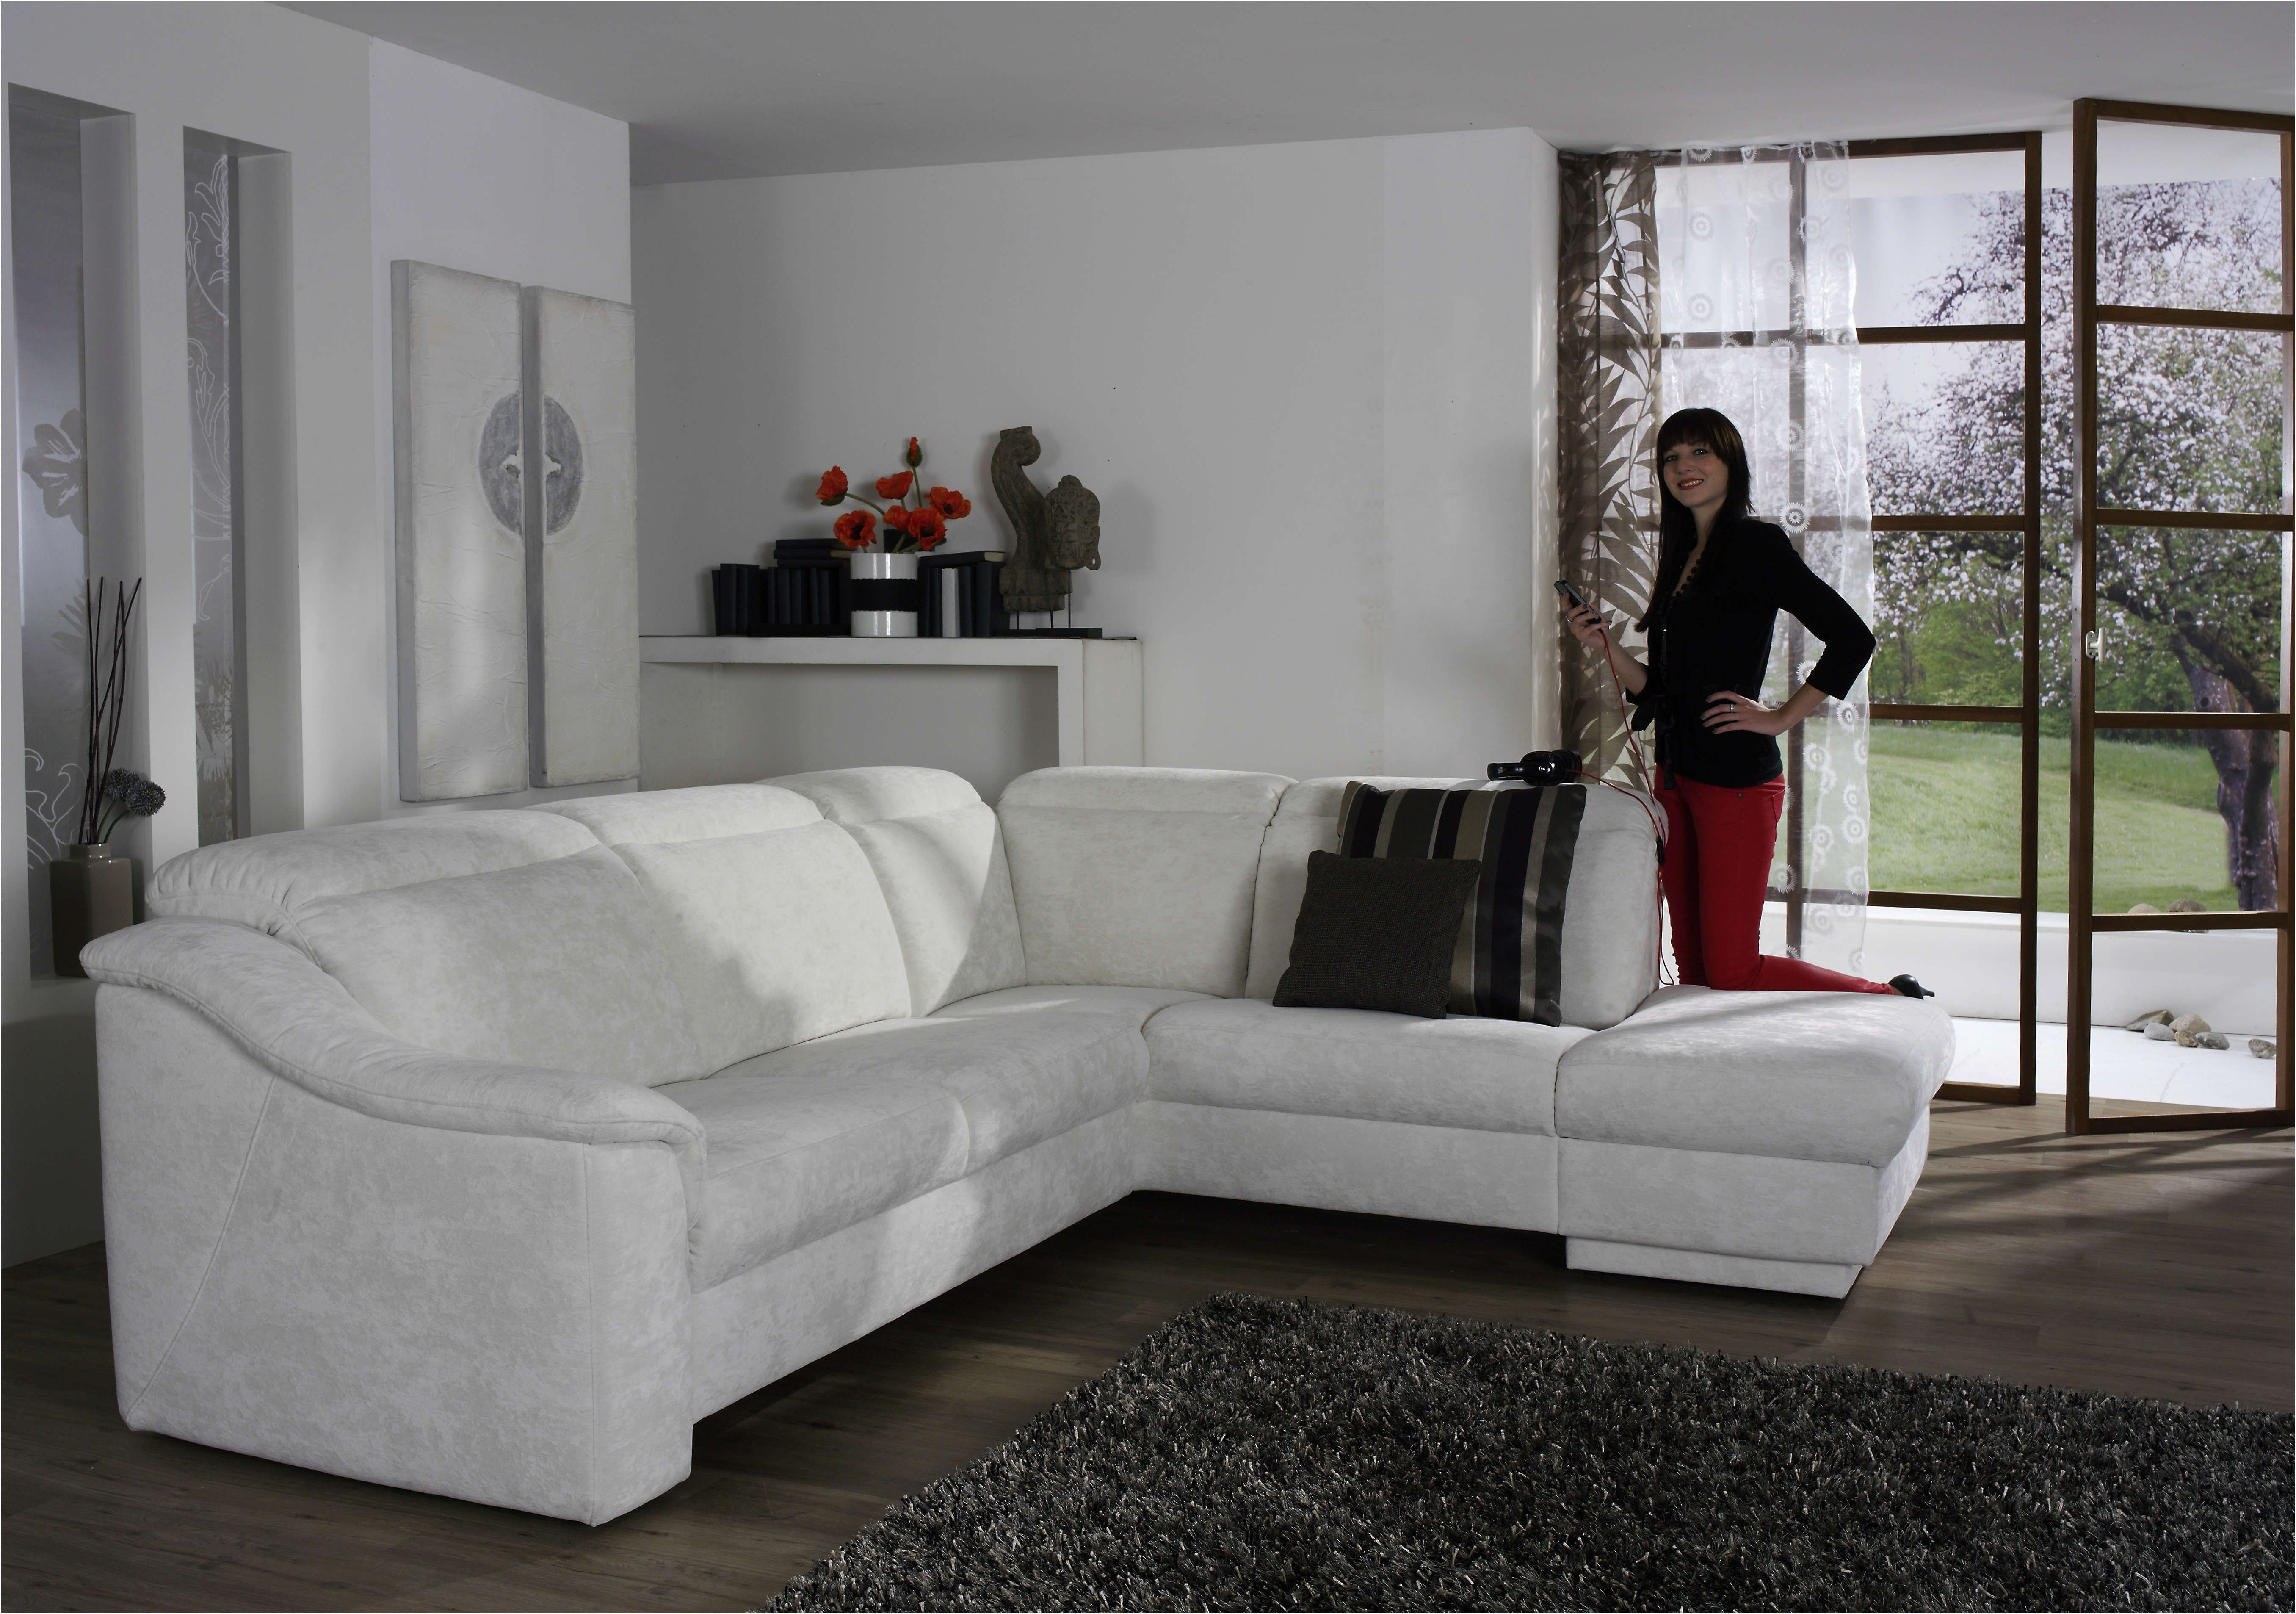 Fabulous Xora Couch Couch, Sofa, Home decor